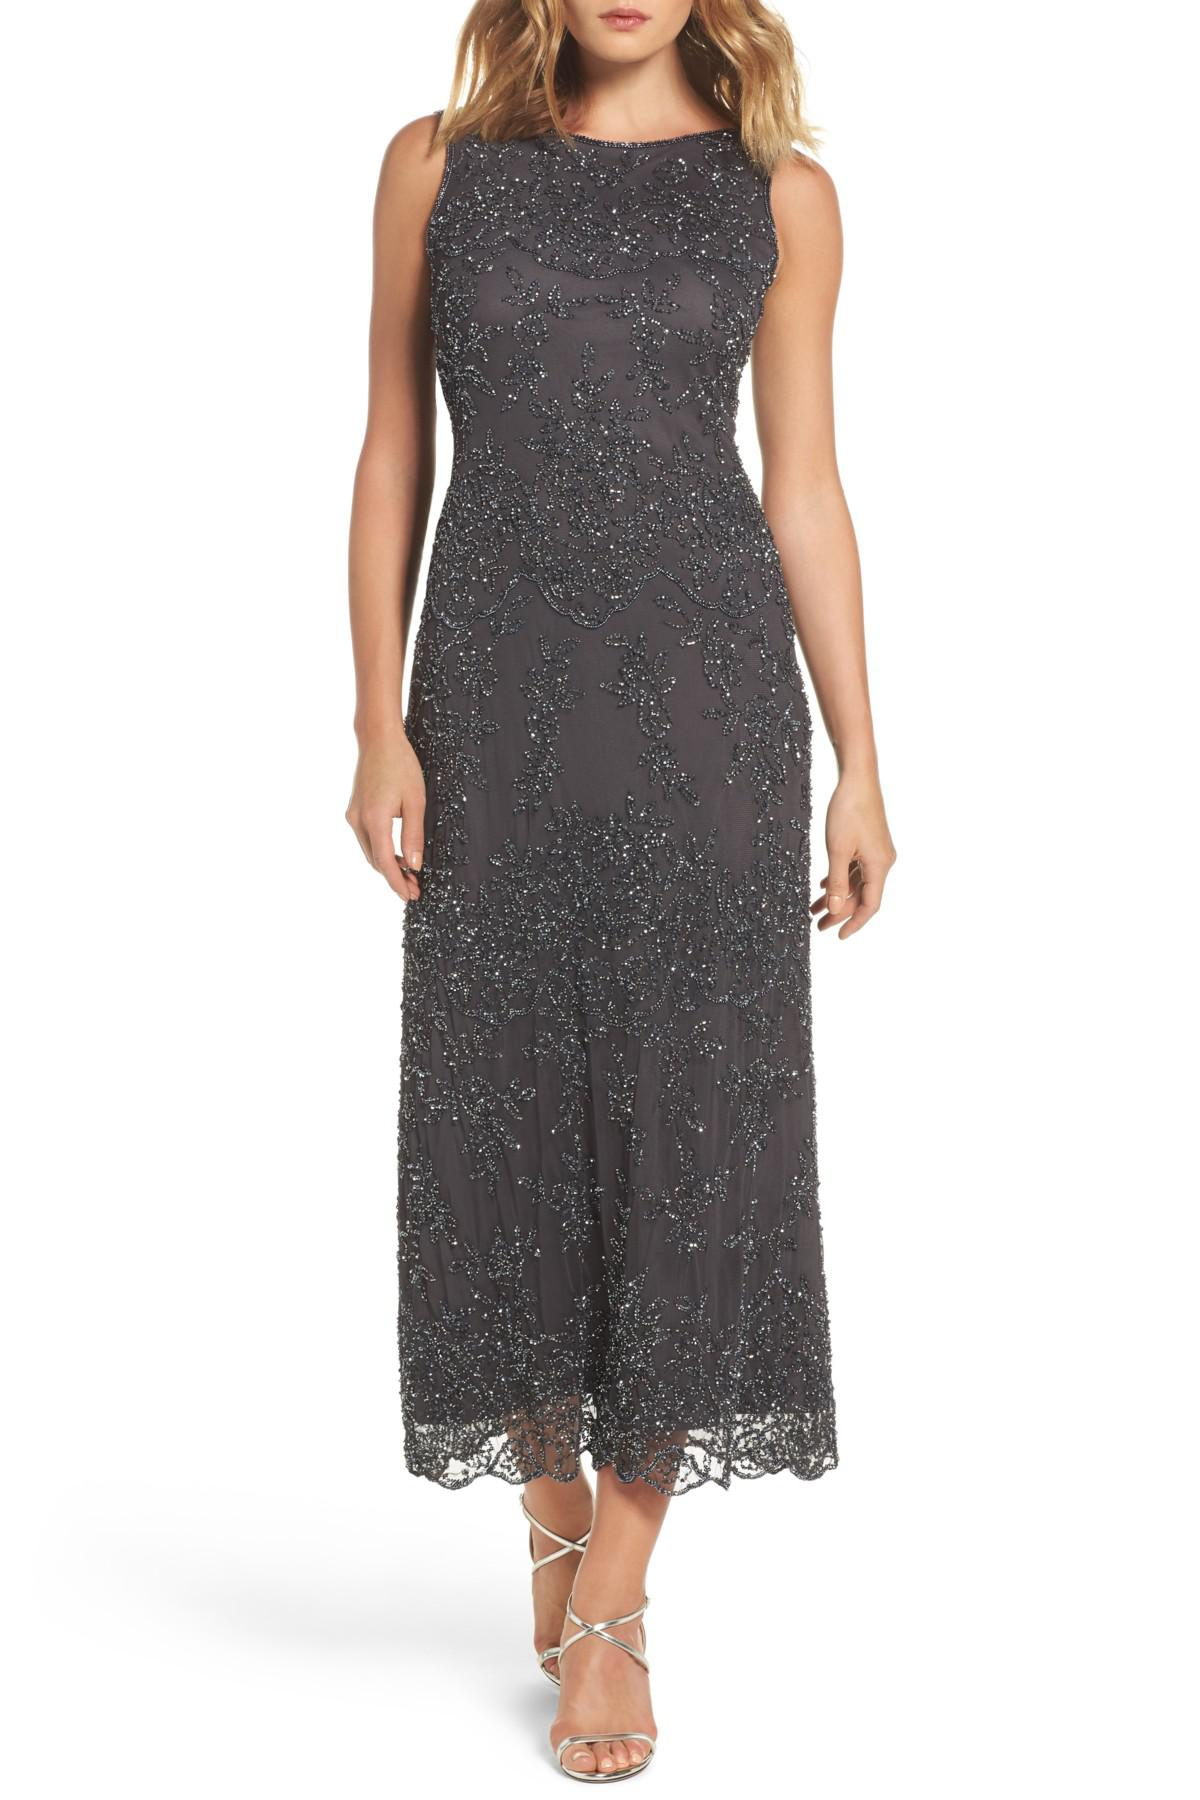 Lyst Pisarro Nights Embellished Mesh Gown In Gray